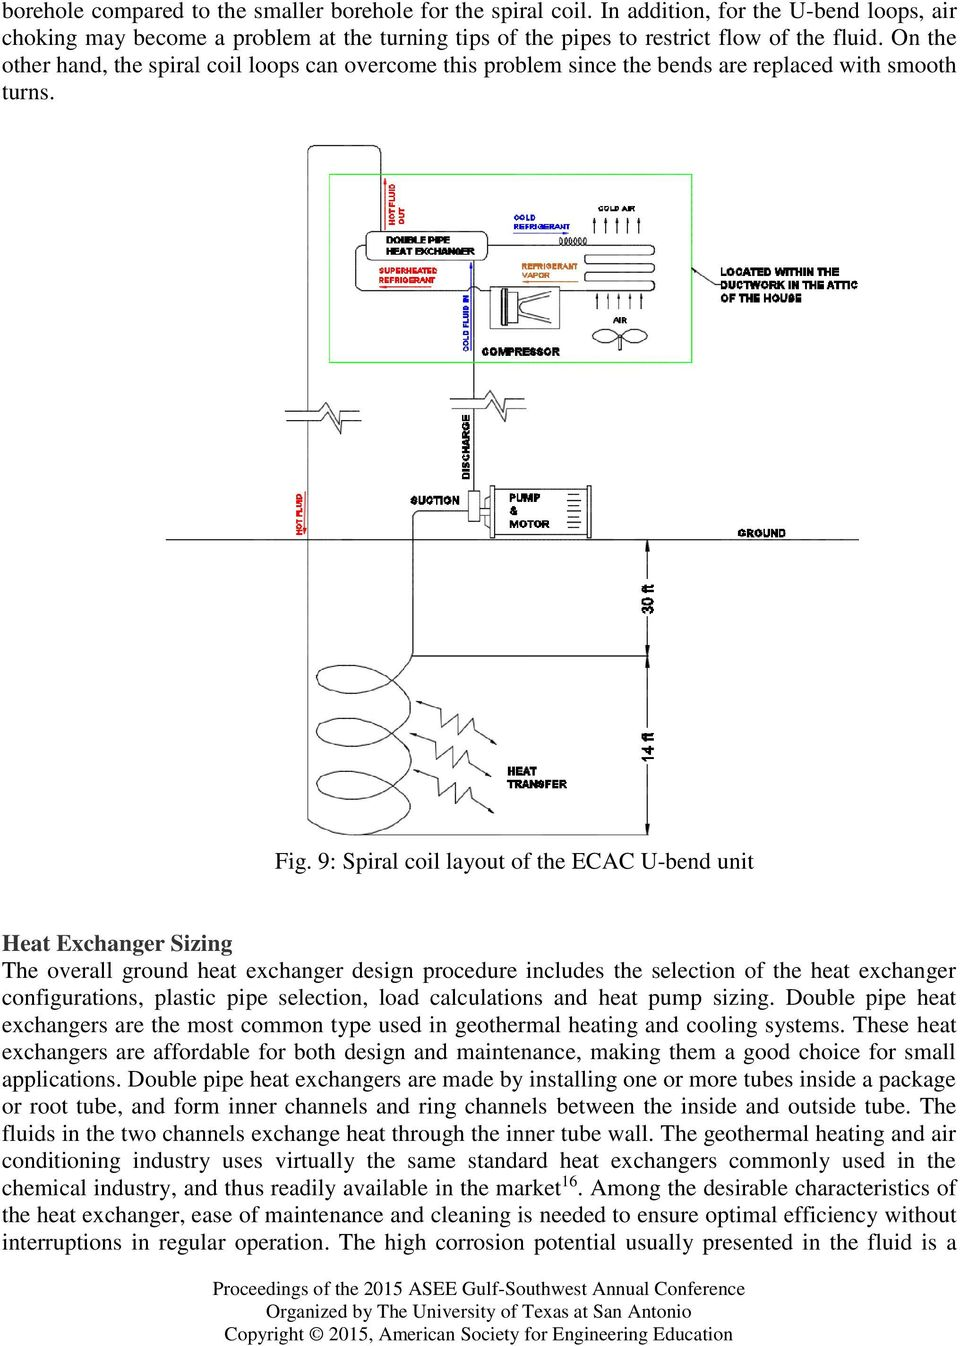 Earth Coupled Air Conditioning Unit Design Analysis Abstract Pdf Piping Layout Compressor 9 Spiral Coil Of The Ecac U Bend Heat Exchanger Sizing